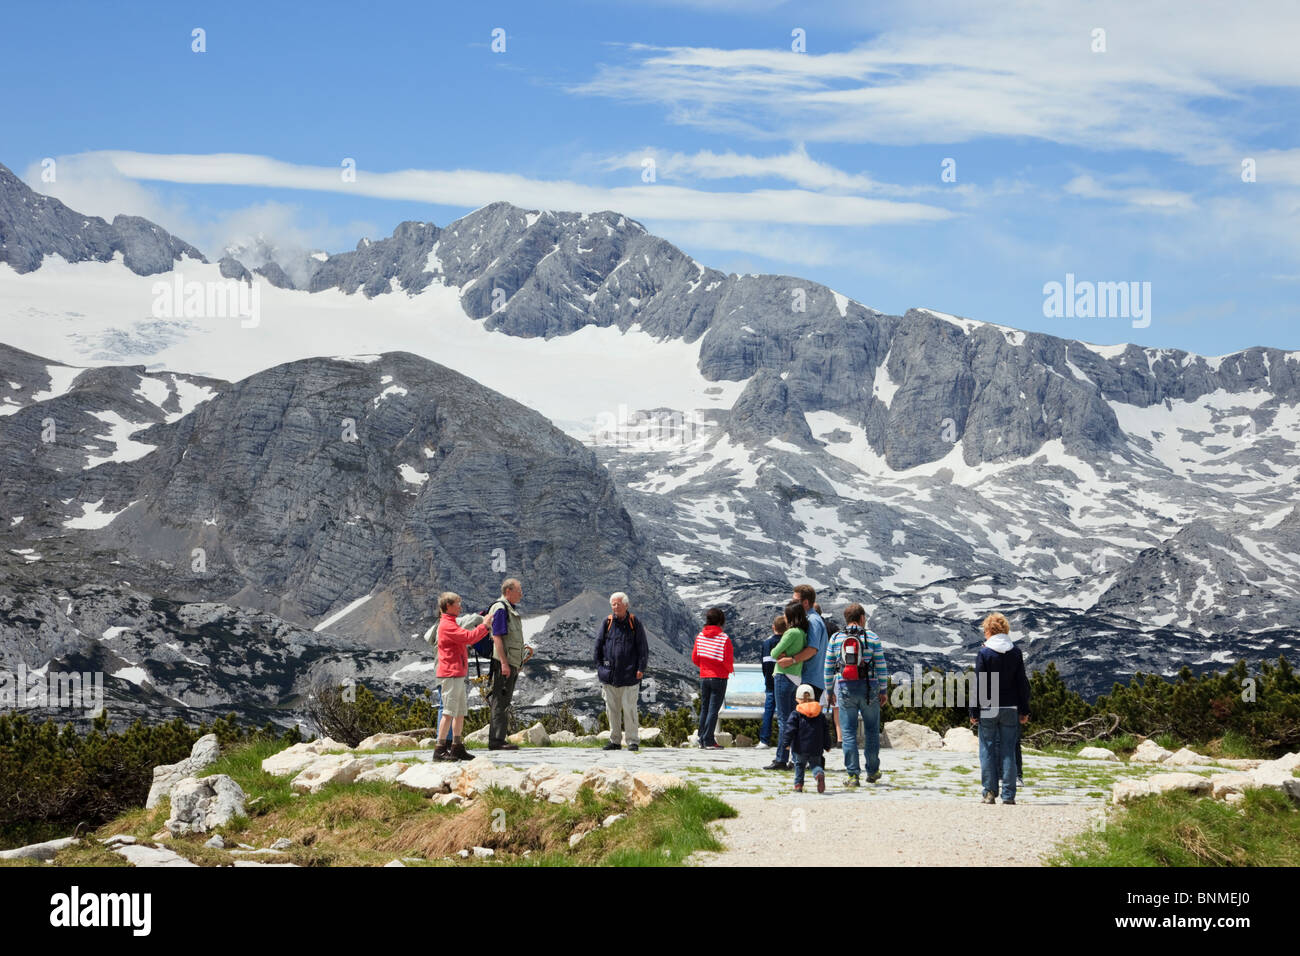 People at the WorldNaturalHeritage viewpoint on Krippenstein mountain in the Dachstein Massif in the Alps in Austria - Stock Image